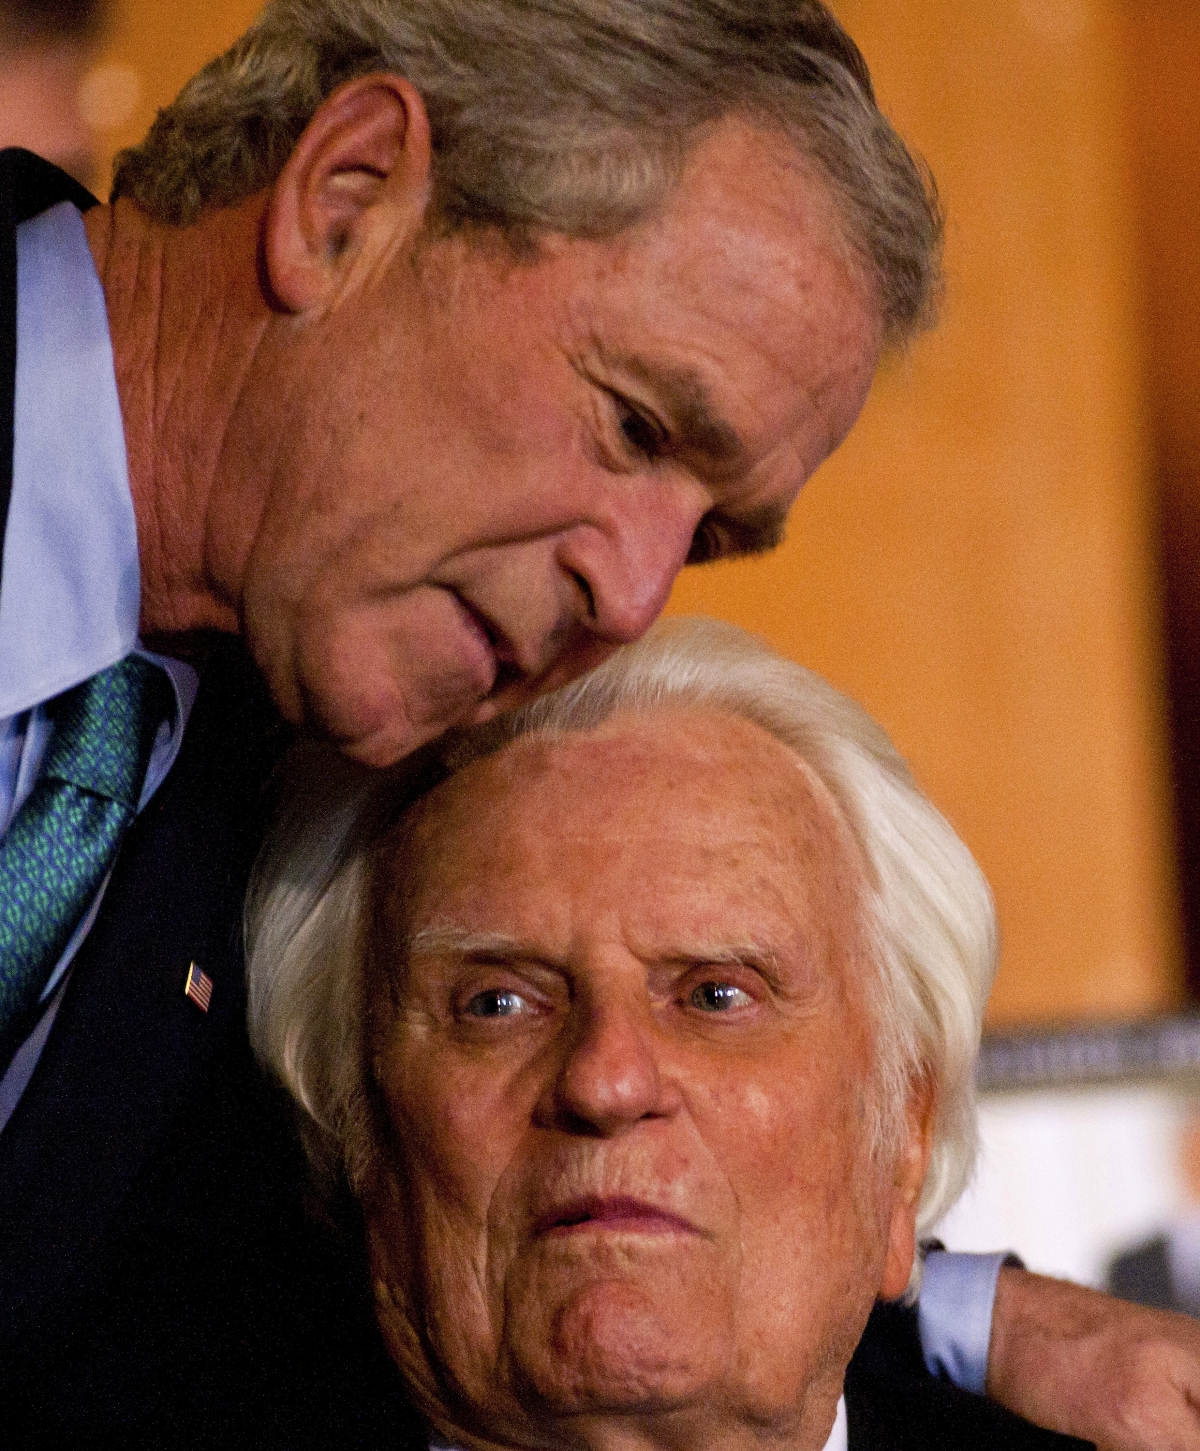 Bush visiting NC Monday to pay respects to Rev. Billy Graham